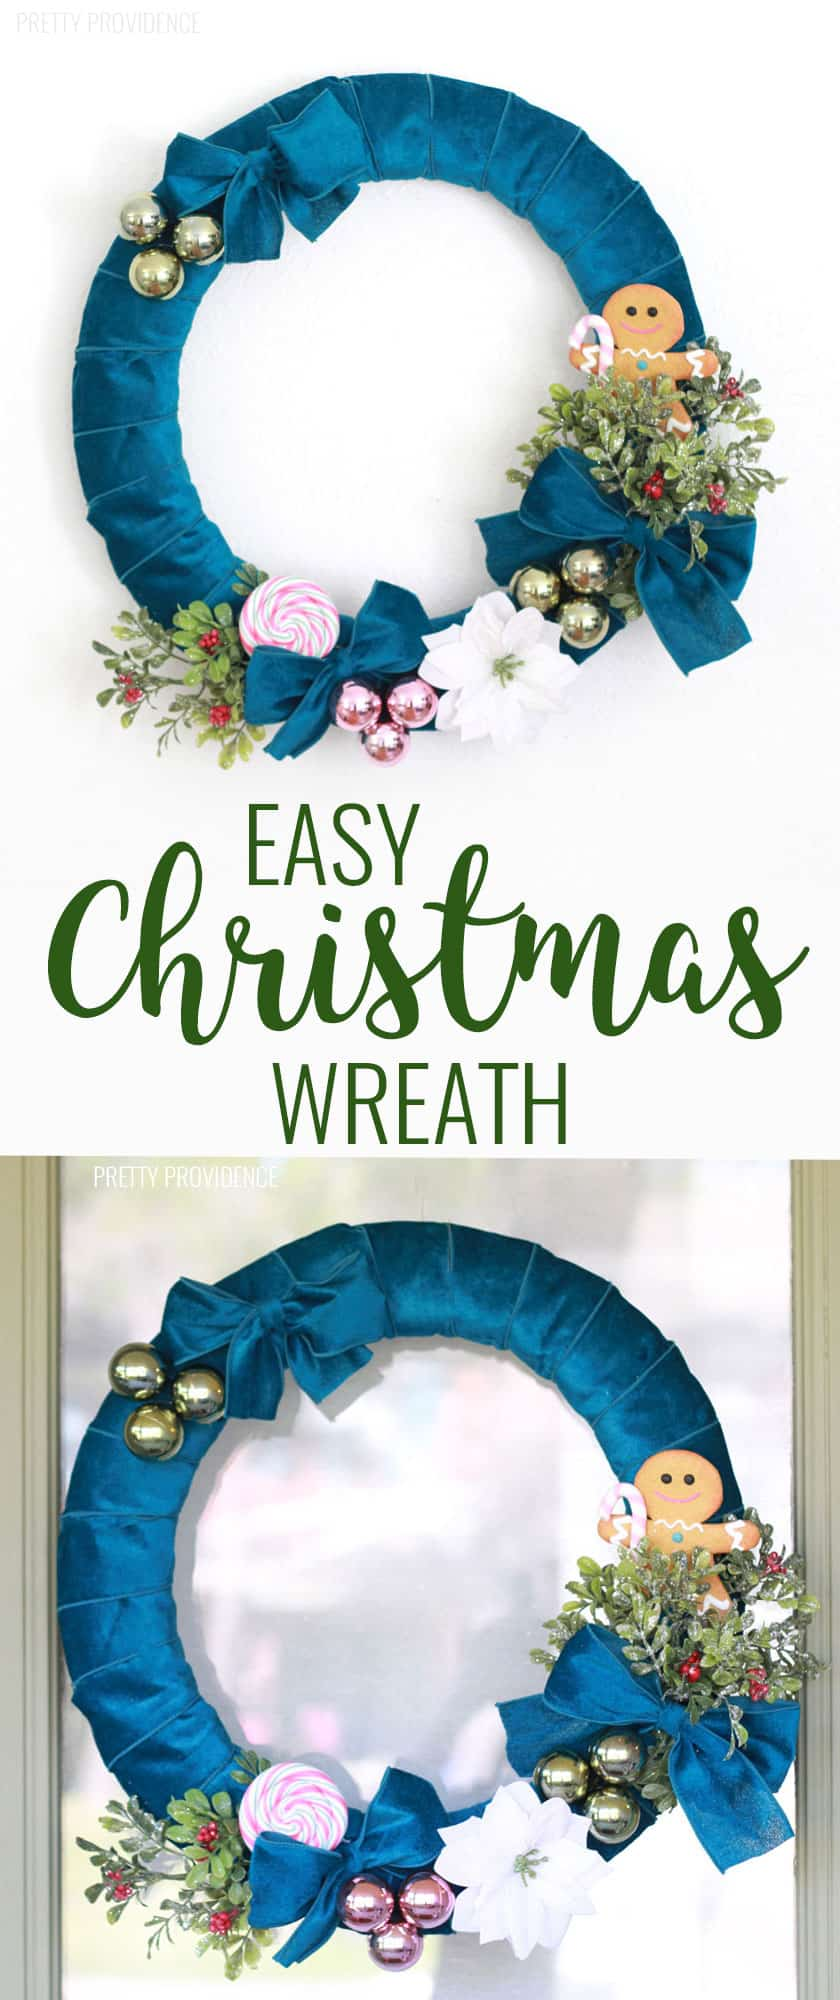 DIY Christmas Wreath with Velvet Ribbon. Vintage-inspired and colorful. This easy wreath is so fun to make! #christmas #wreath #diywreath #ribbon #ornaments #midcenturymodern #christmasideas #christmasdecor #christmasdecorations